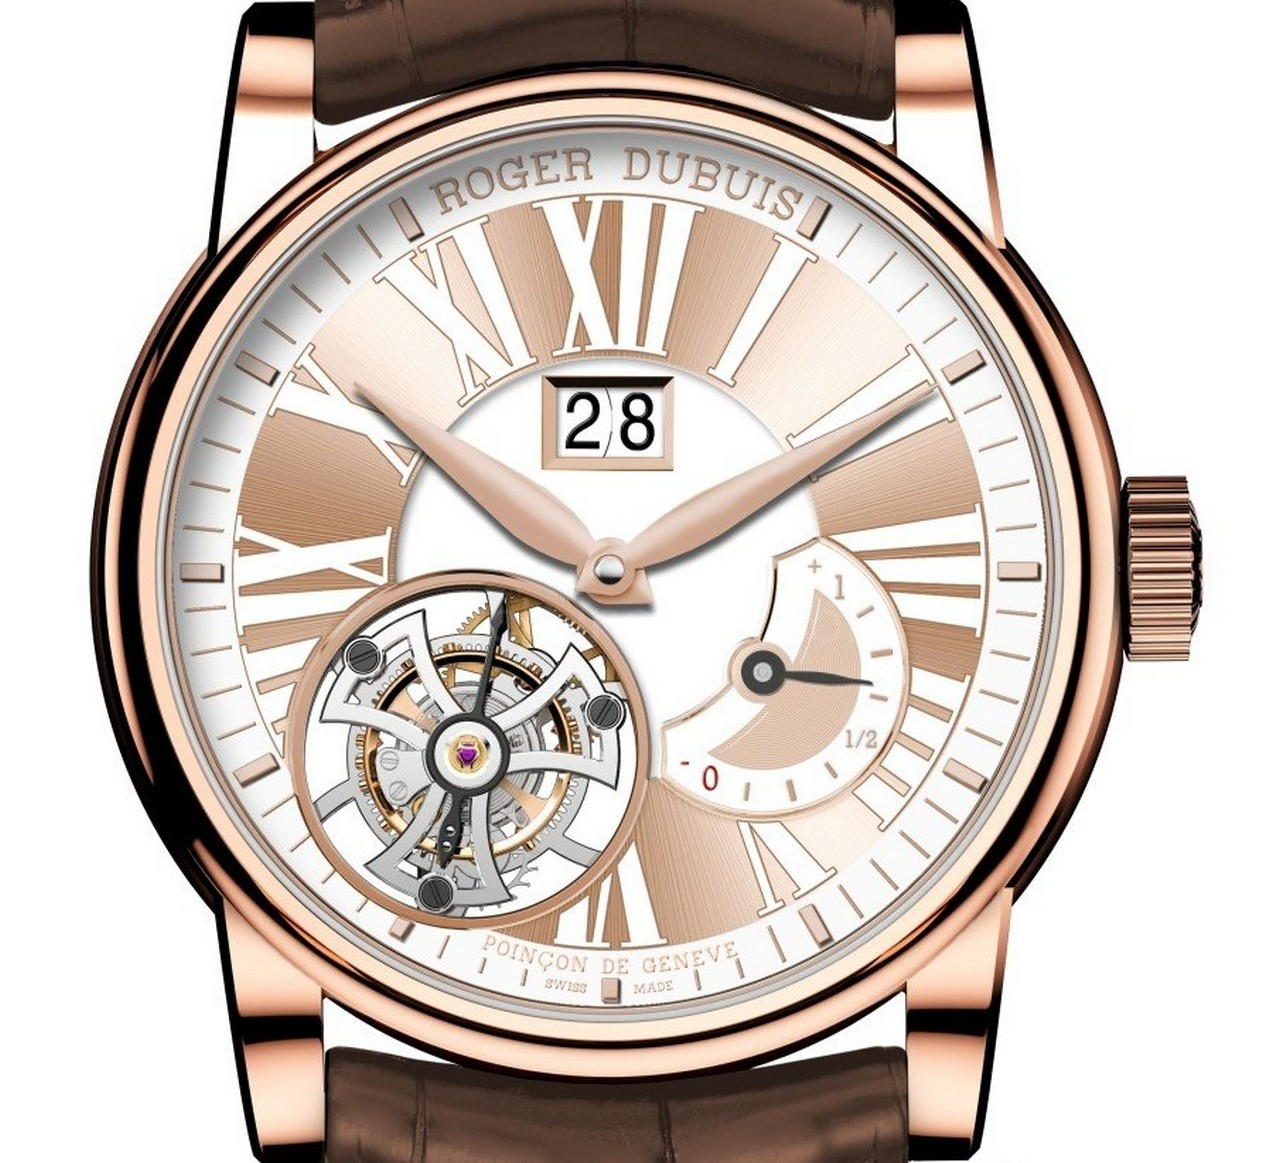 sihh-2014-roger-dubuis-hommage-tourbillon-volante-doro-rosa-tribute-to-mr-roger-dubuis-limited-edition_0-100_3